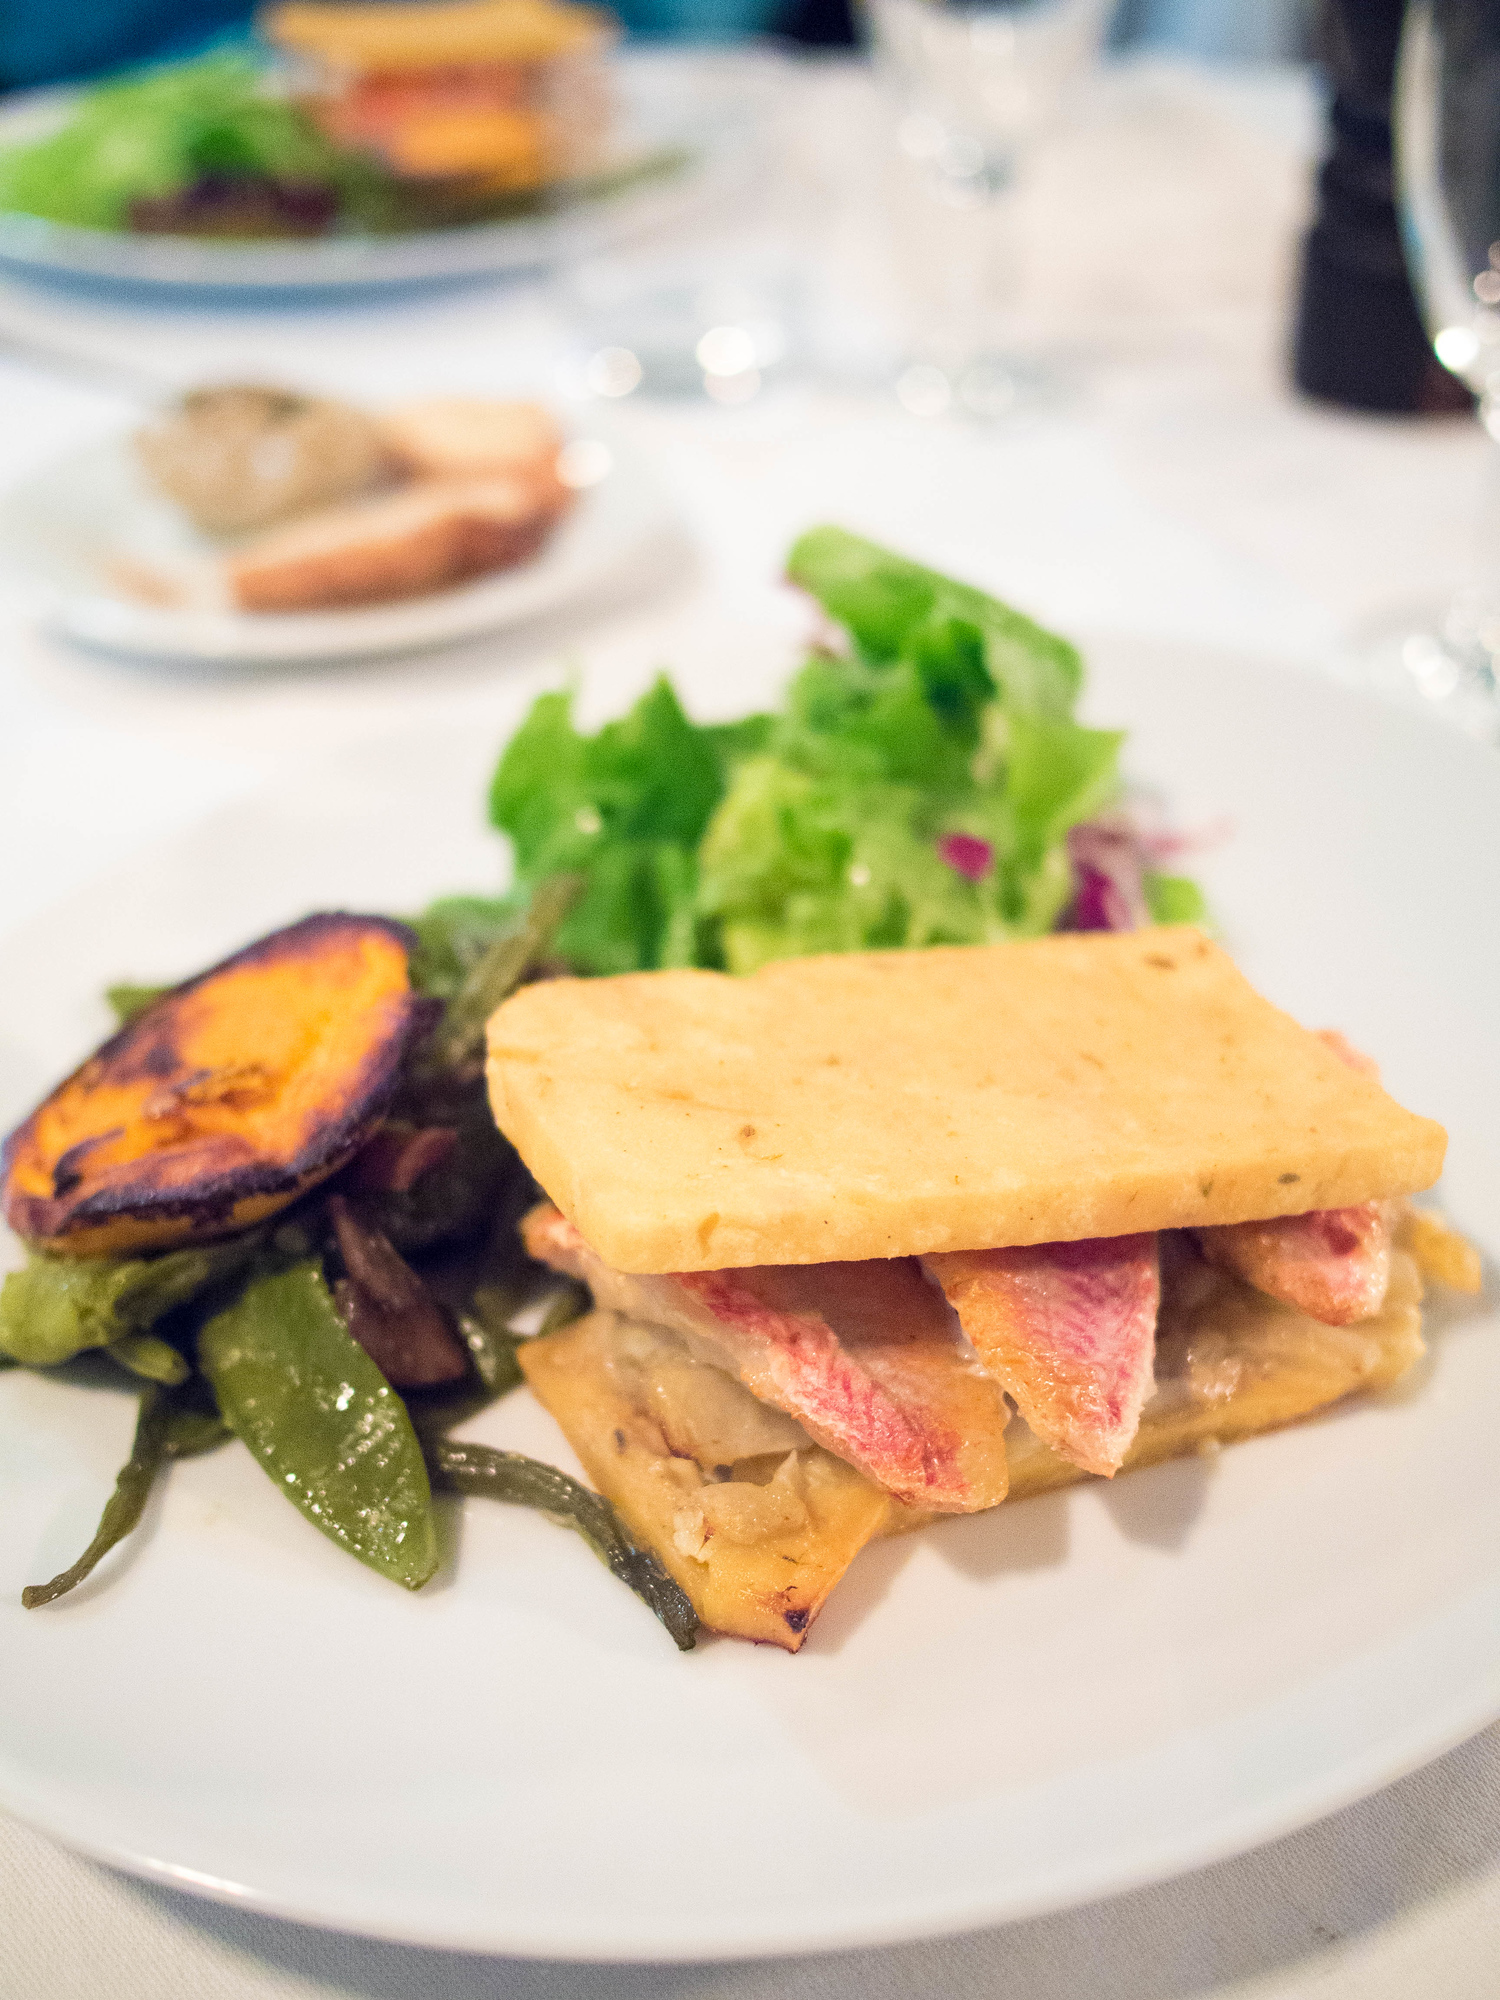 Panisse, a chickpea flatbread. Discover what to eat in Marseille with culinary influences from Italy, Spain and North Africa.